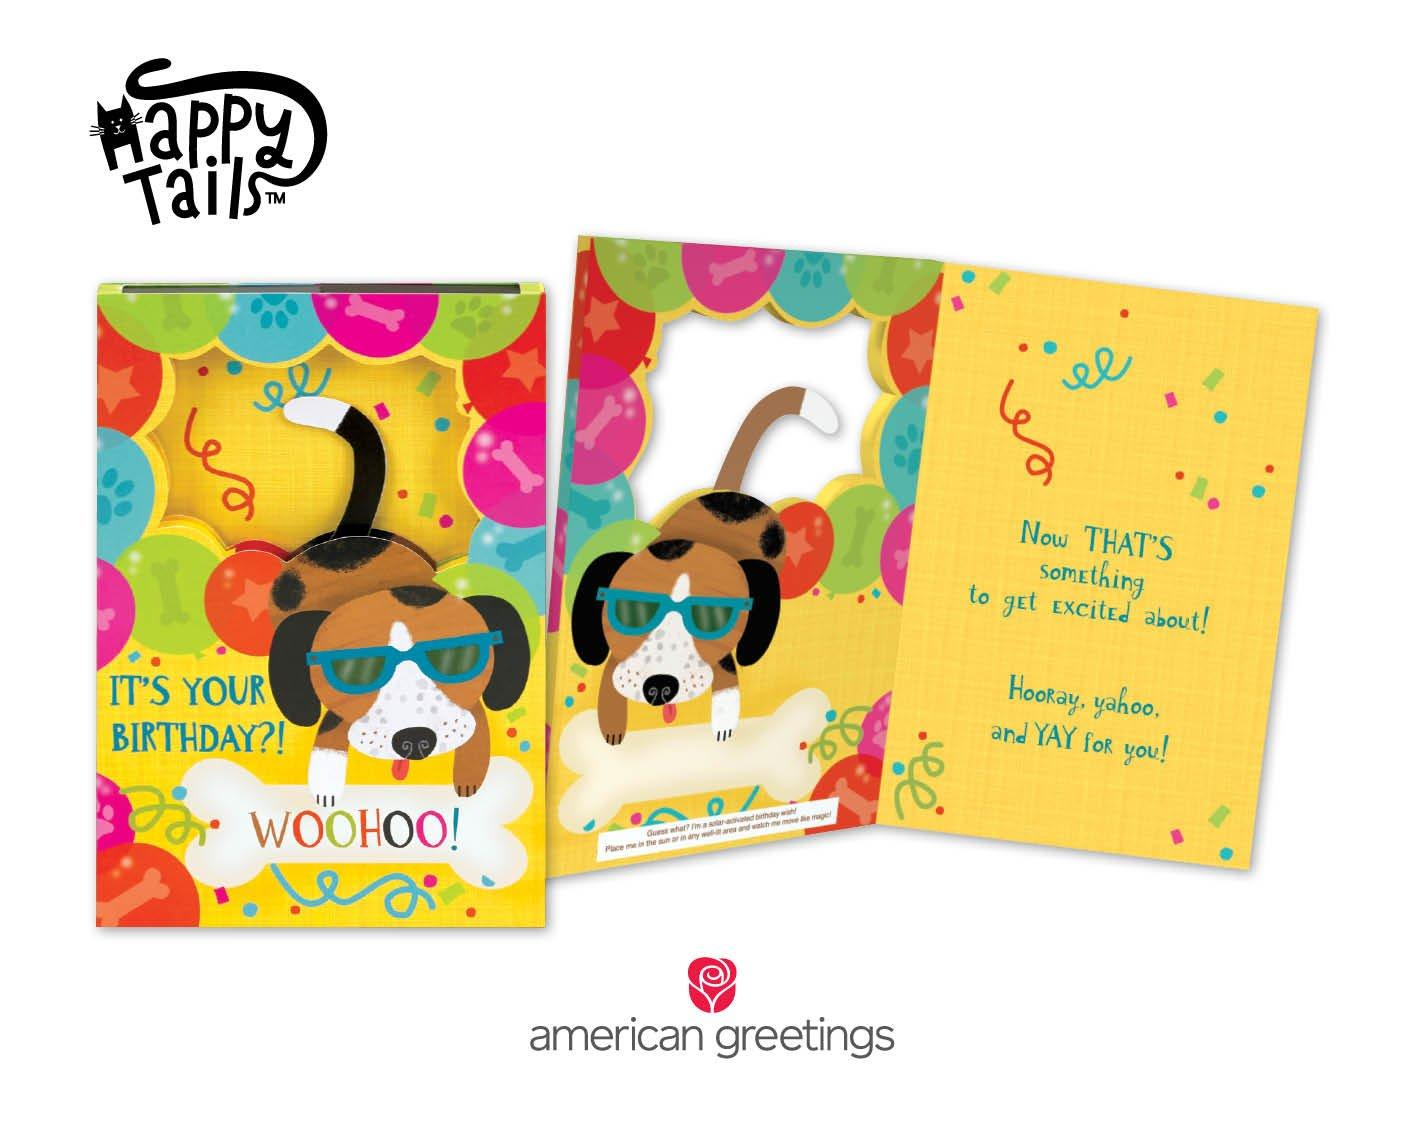 new happy tailstm birthday cards from american greetings feature, Birthday card